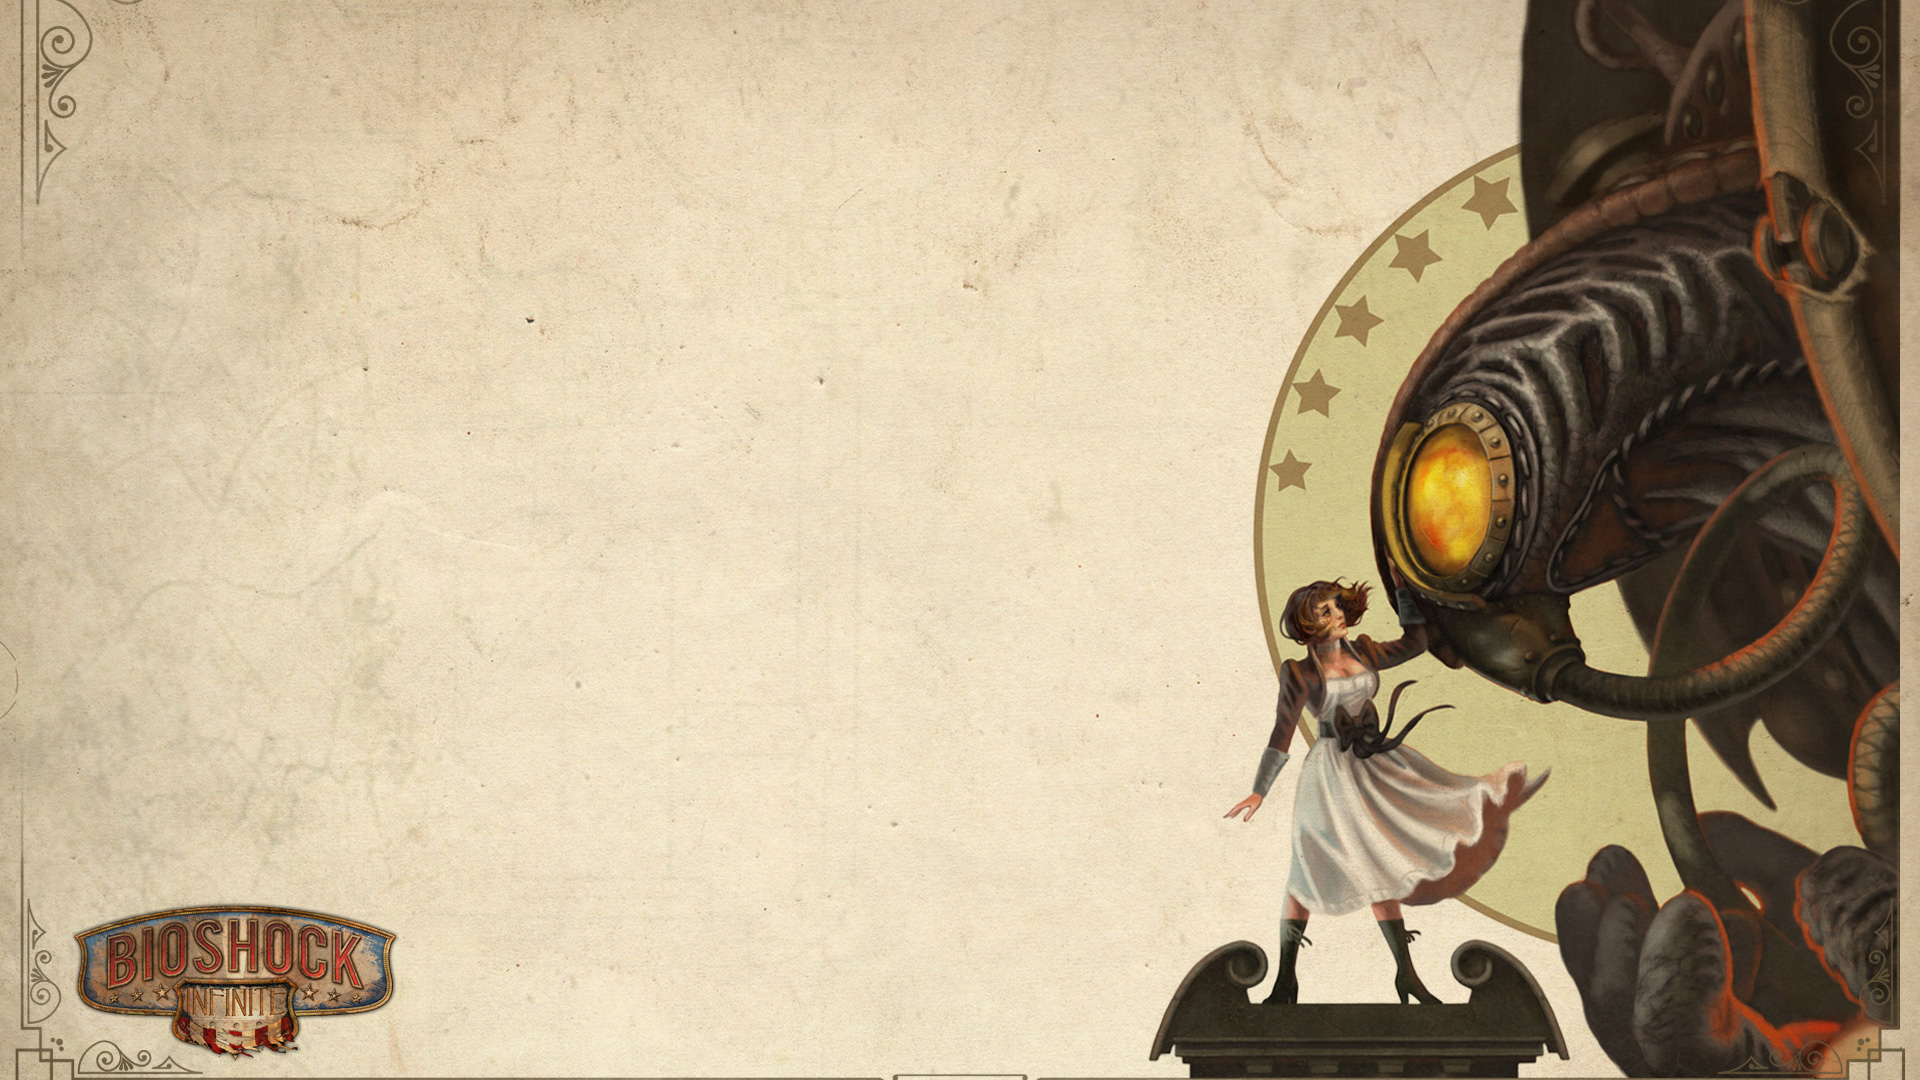 Bioshock Infinite wallpaper 10